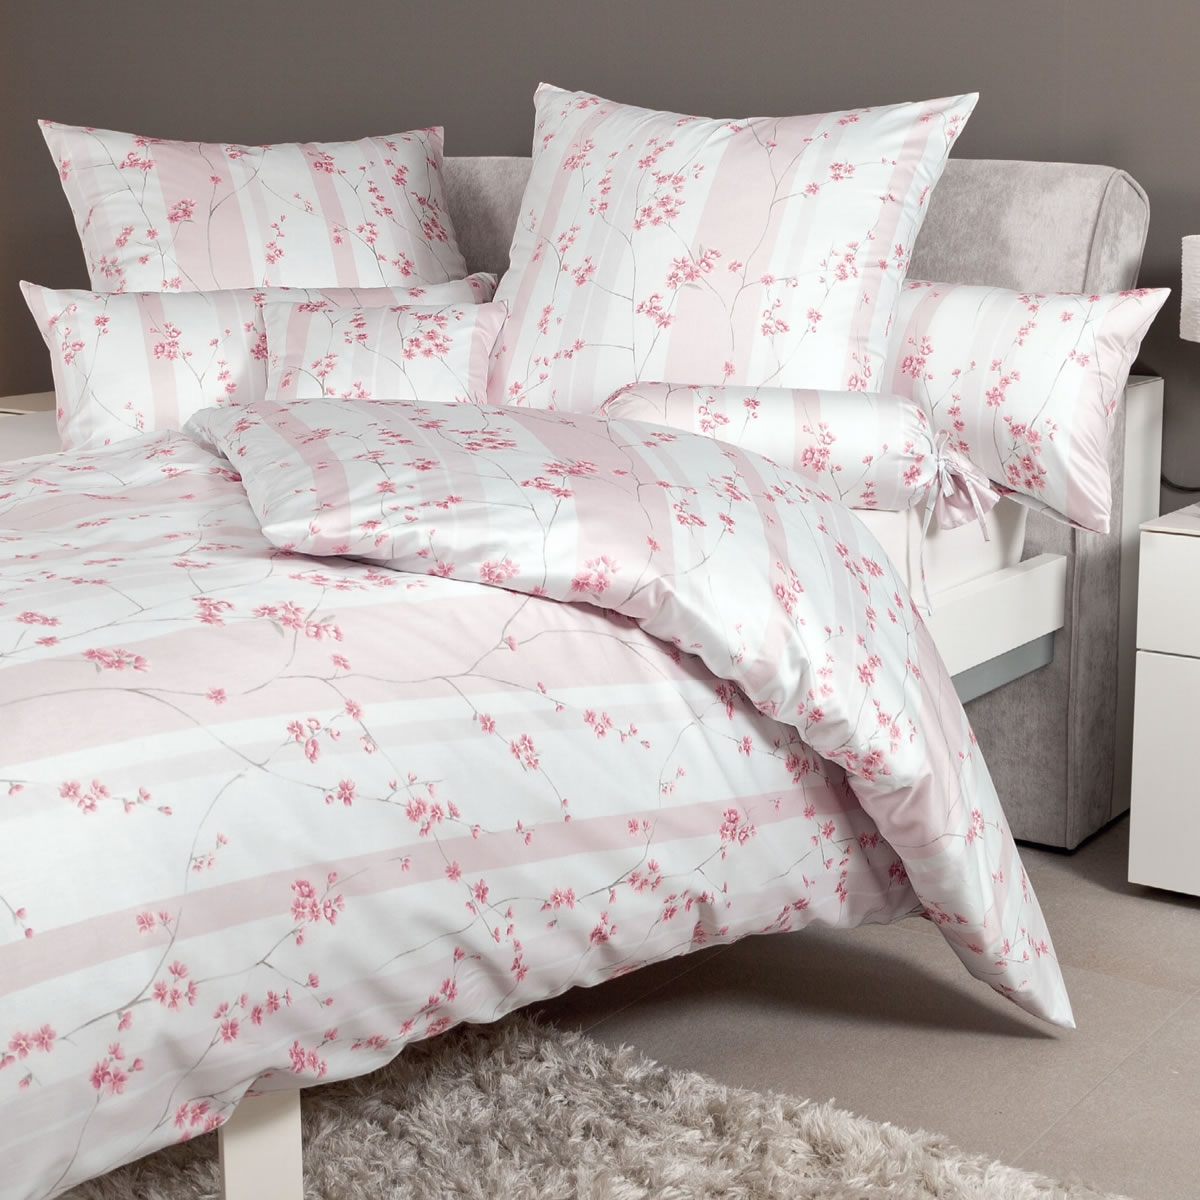 Janine Mako Satin Bettwäsche Messina 43043 01 Rosé Rosa Blumen